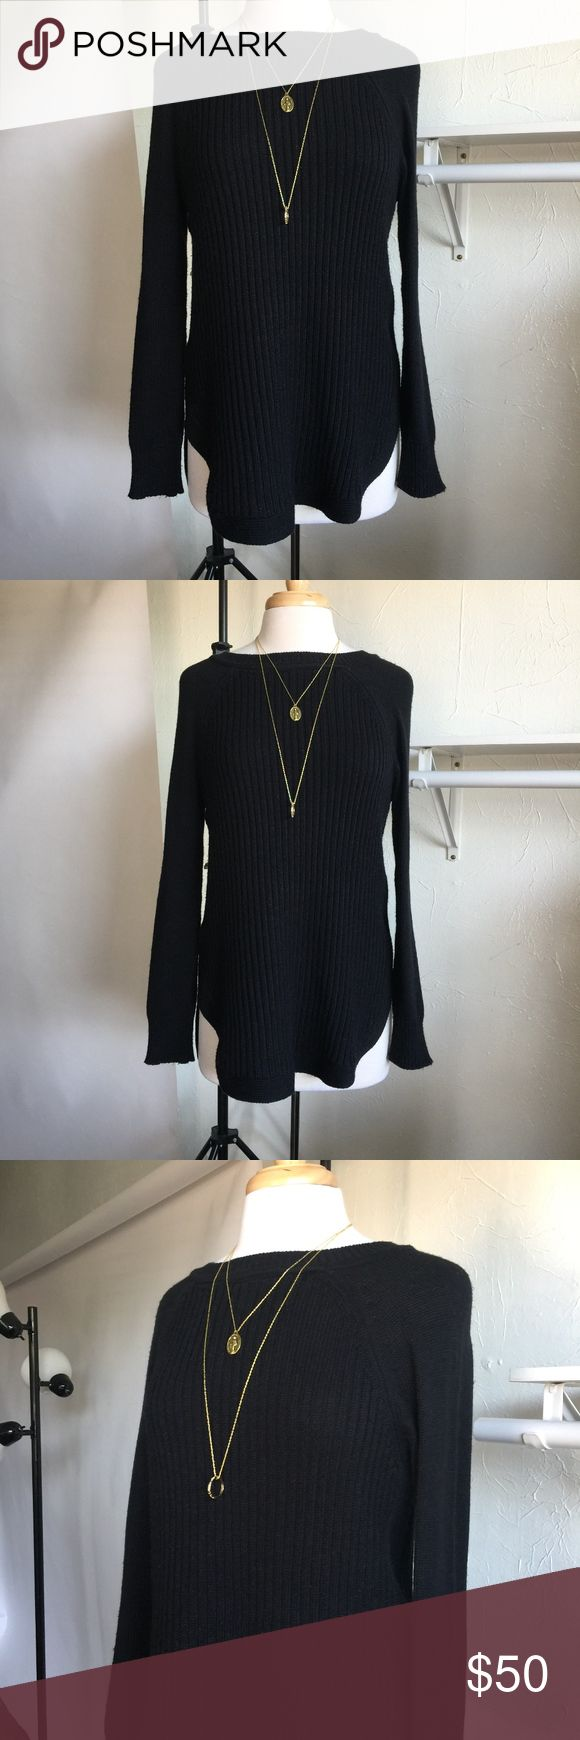 Black Knit Sweater Black knit sweater with a short long design at bottom. Perfect for the winter, can be paired with any bottoms. Marked as medium, will fit oversized on petites. Be sure to find me on Instagram @theanalyssa and Snapchat the.analyssa  Measurements: -Sleeve length: 27 in. -Back of neck to bottom of hem: 30 in. -Width laying flat: 17 in. -Marked as Medium -Care: Hand wash cold Sweaters